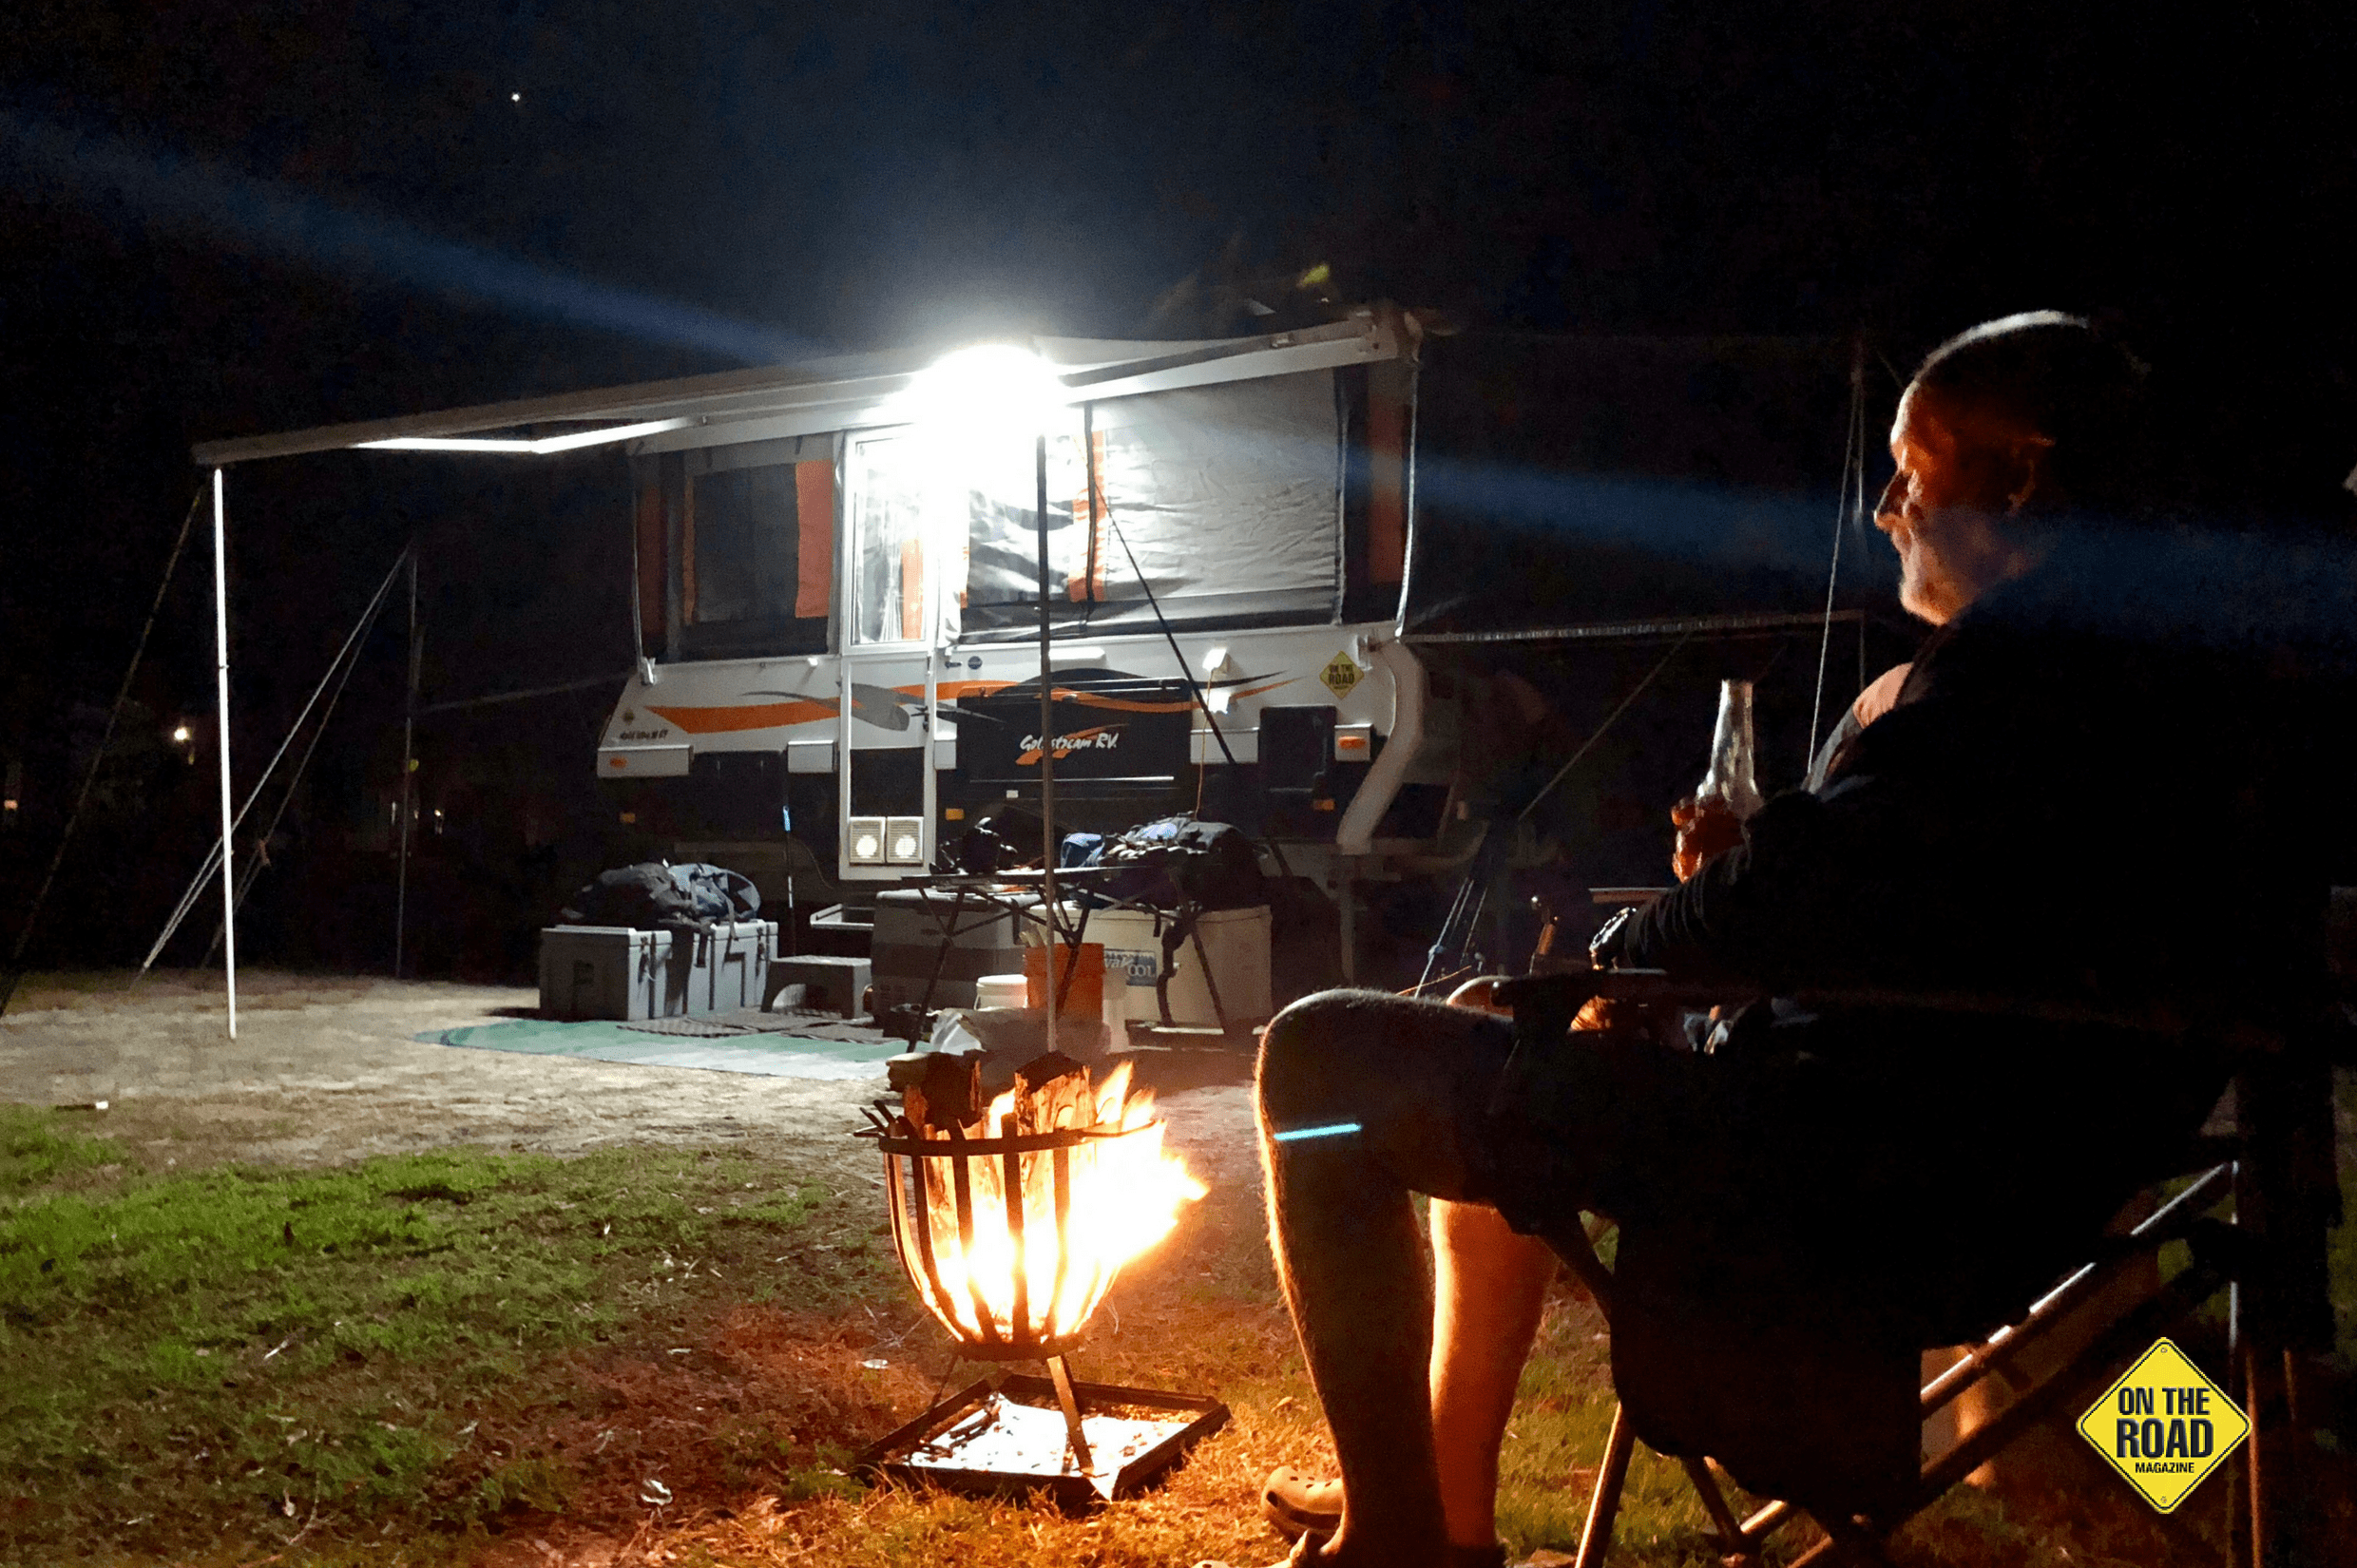 A cold beer around the fire at days end